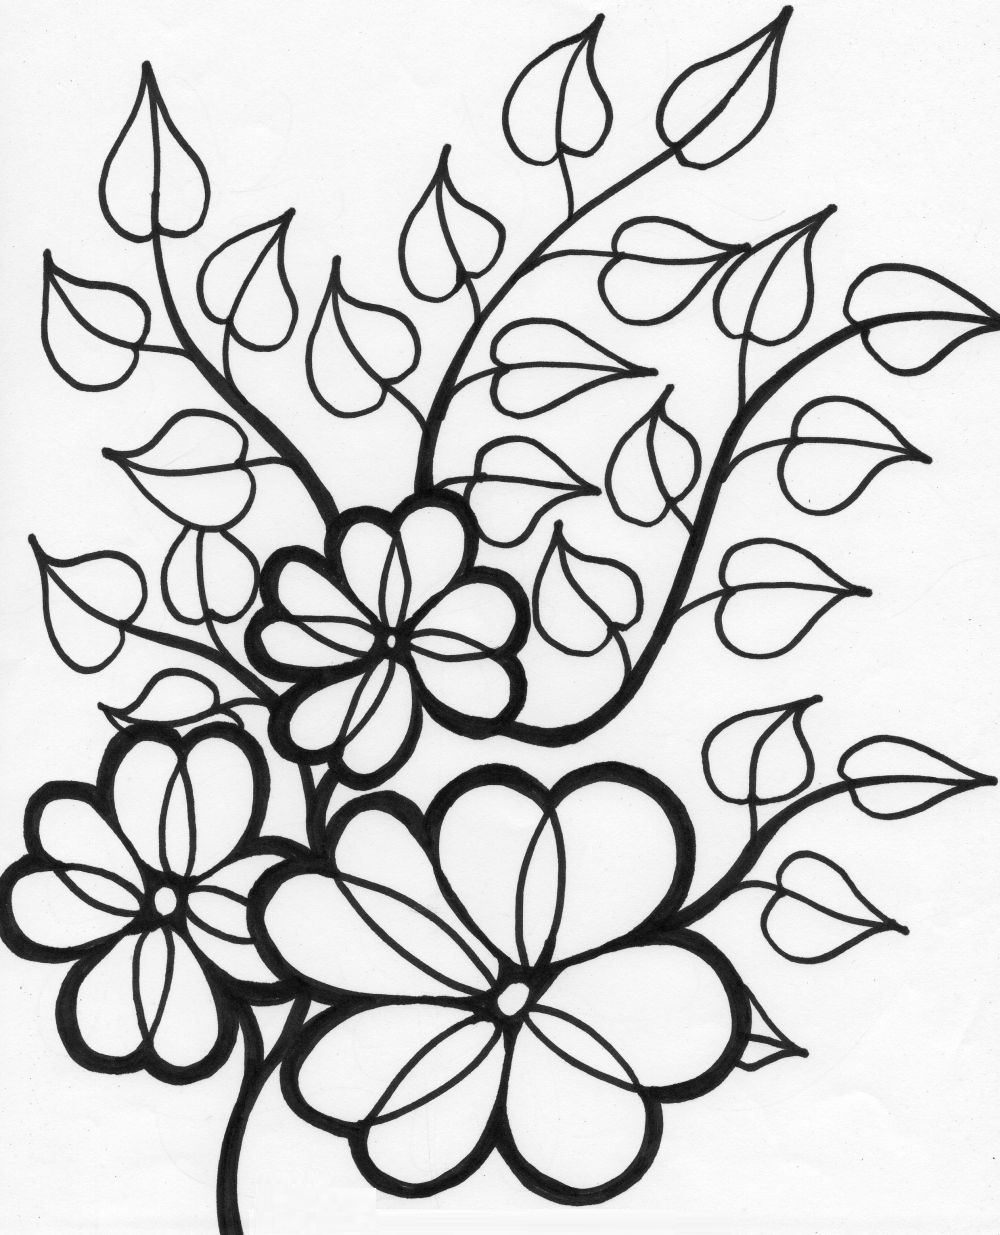 images of flowers to color flower plants in blossom coloring page coloring sky images to flowers color of